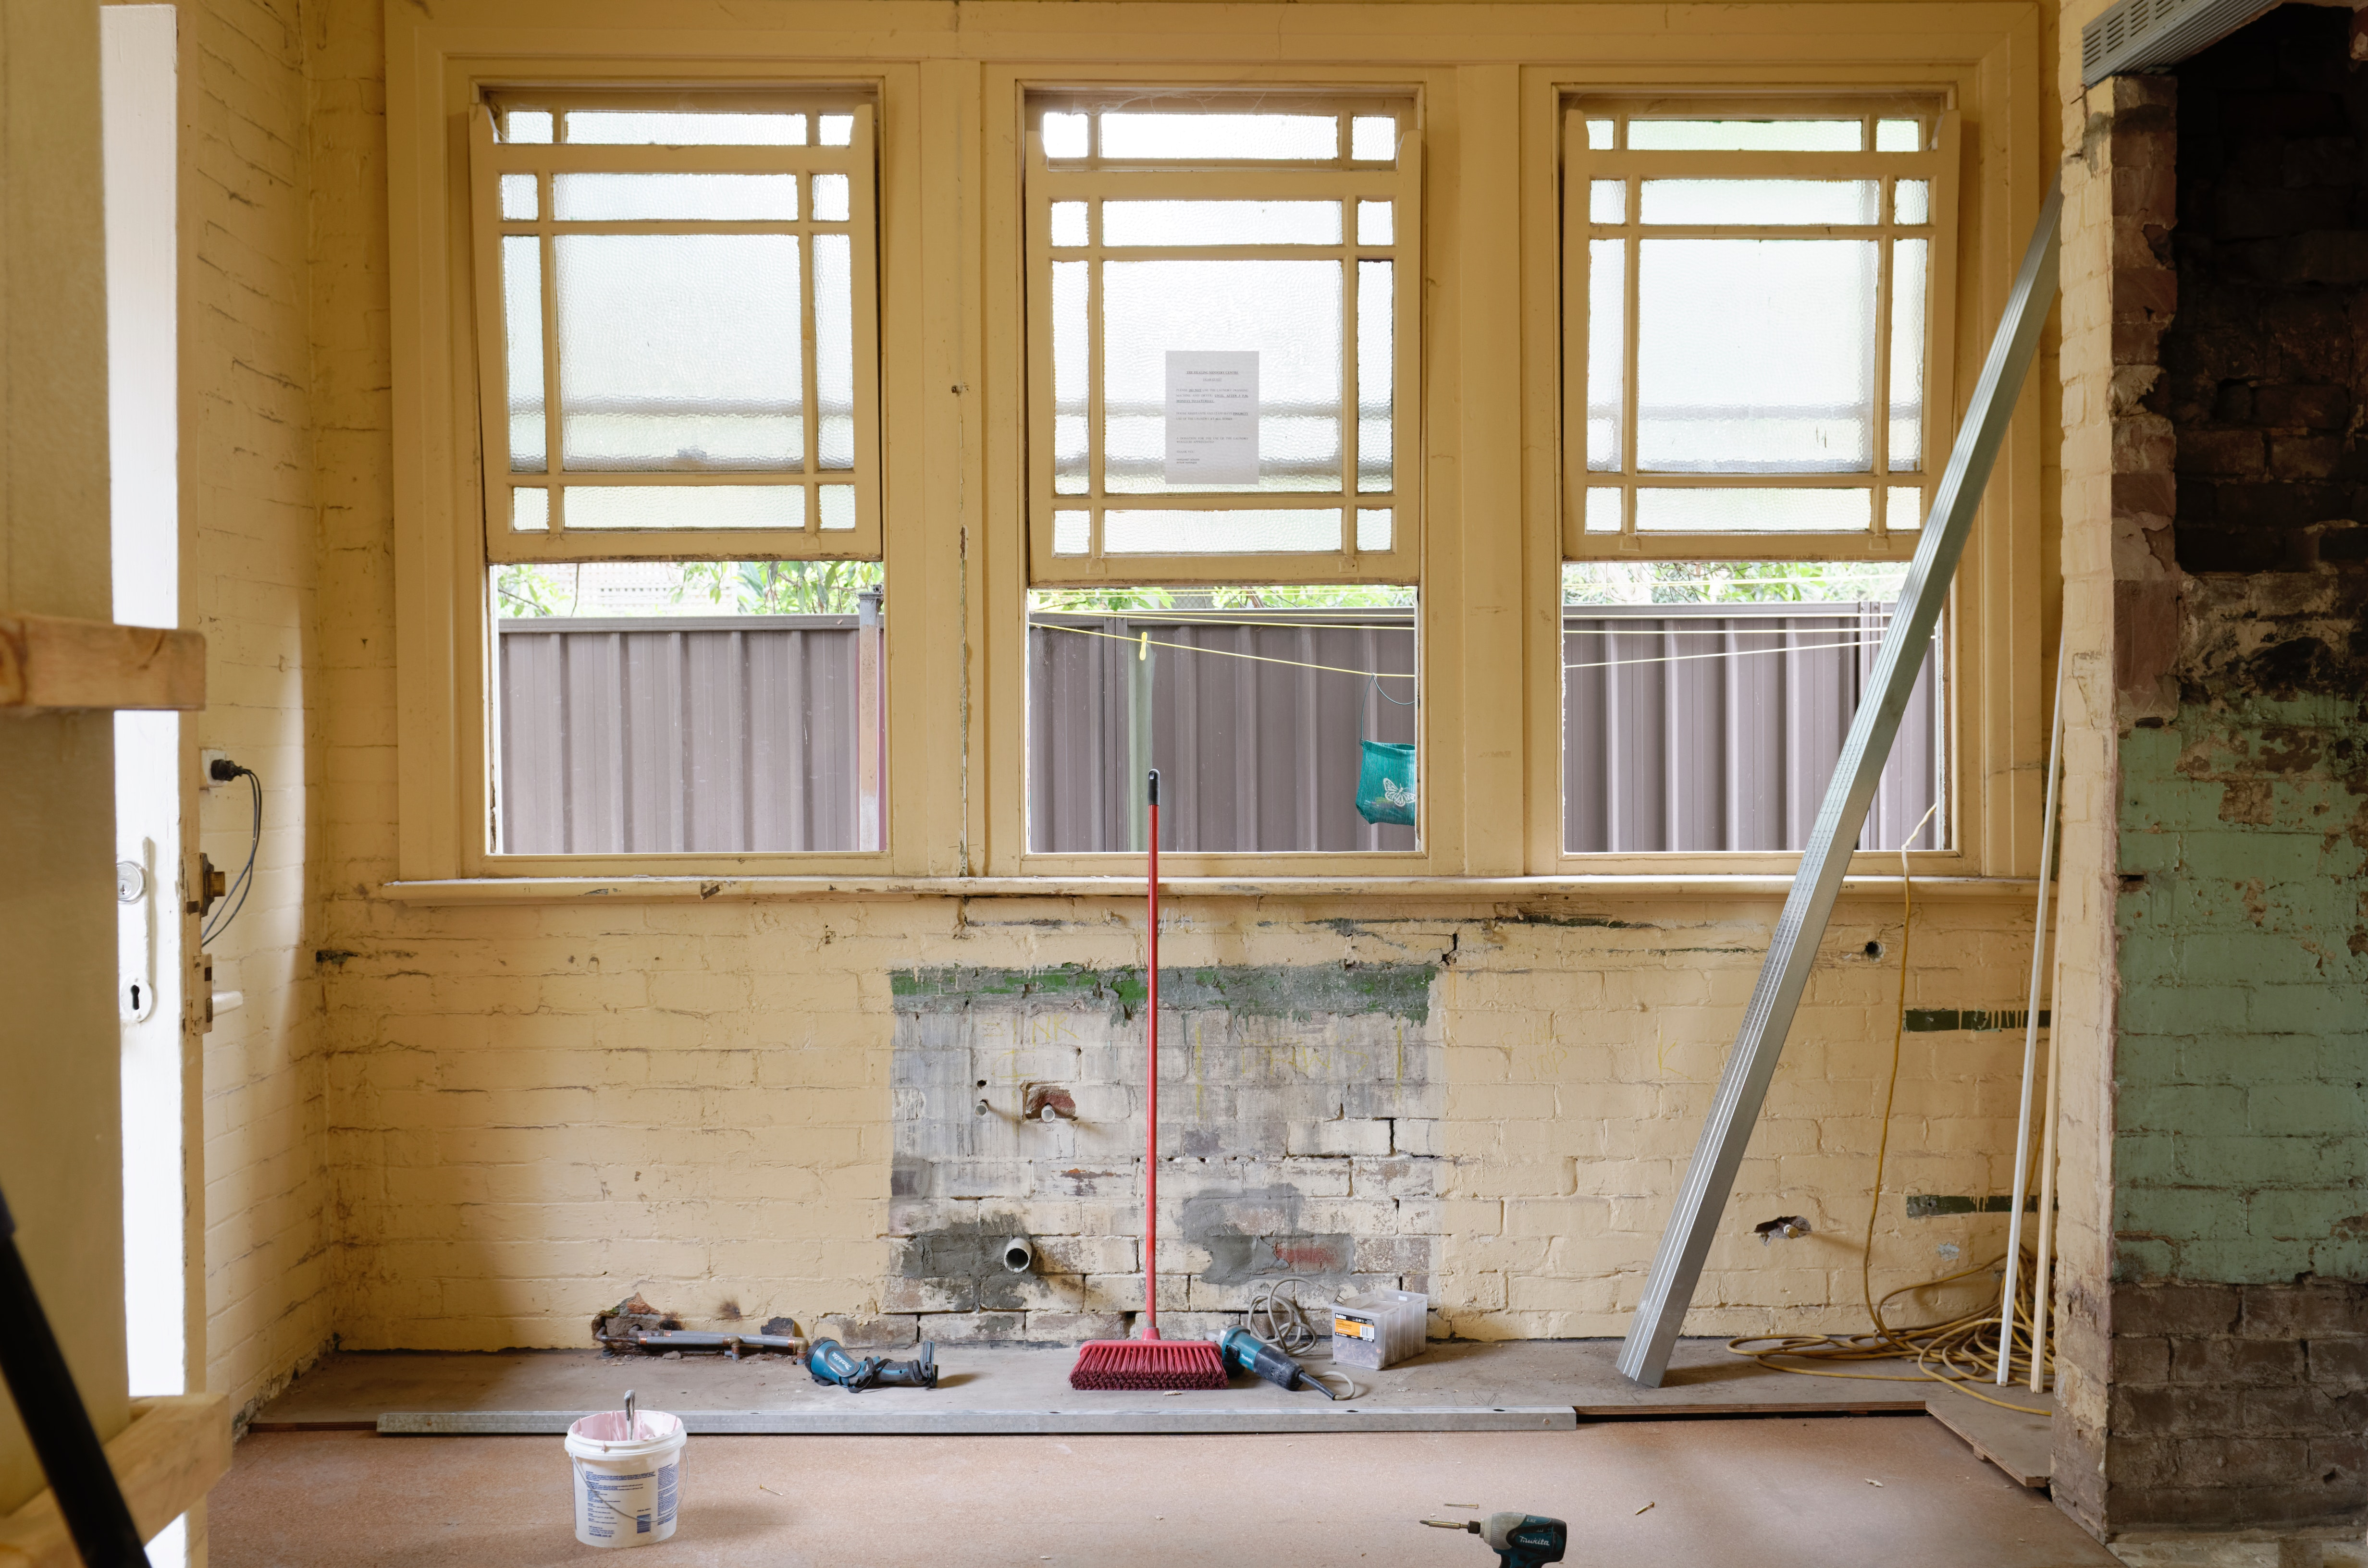 Which Home Repairs You Should Avoid Doing DIY — and Why